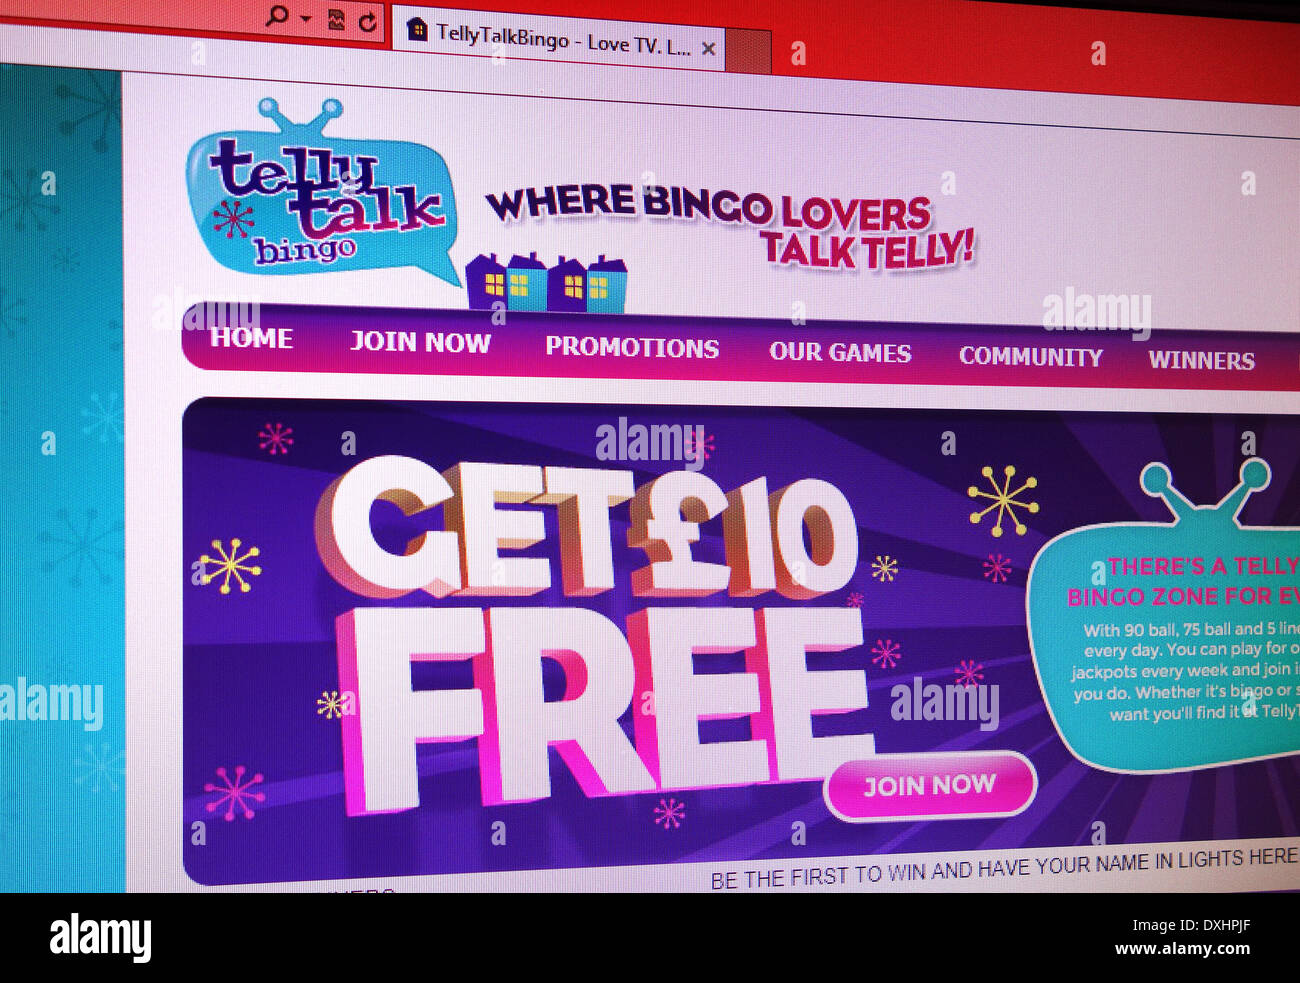 Telly Talk Bingo website - Stock Image